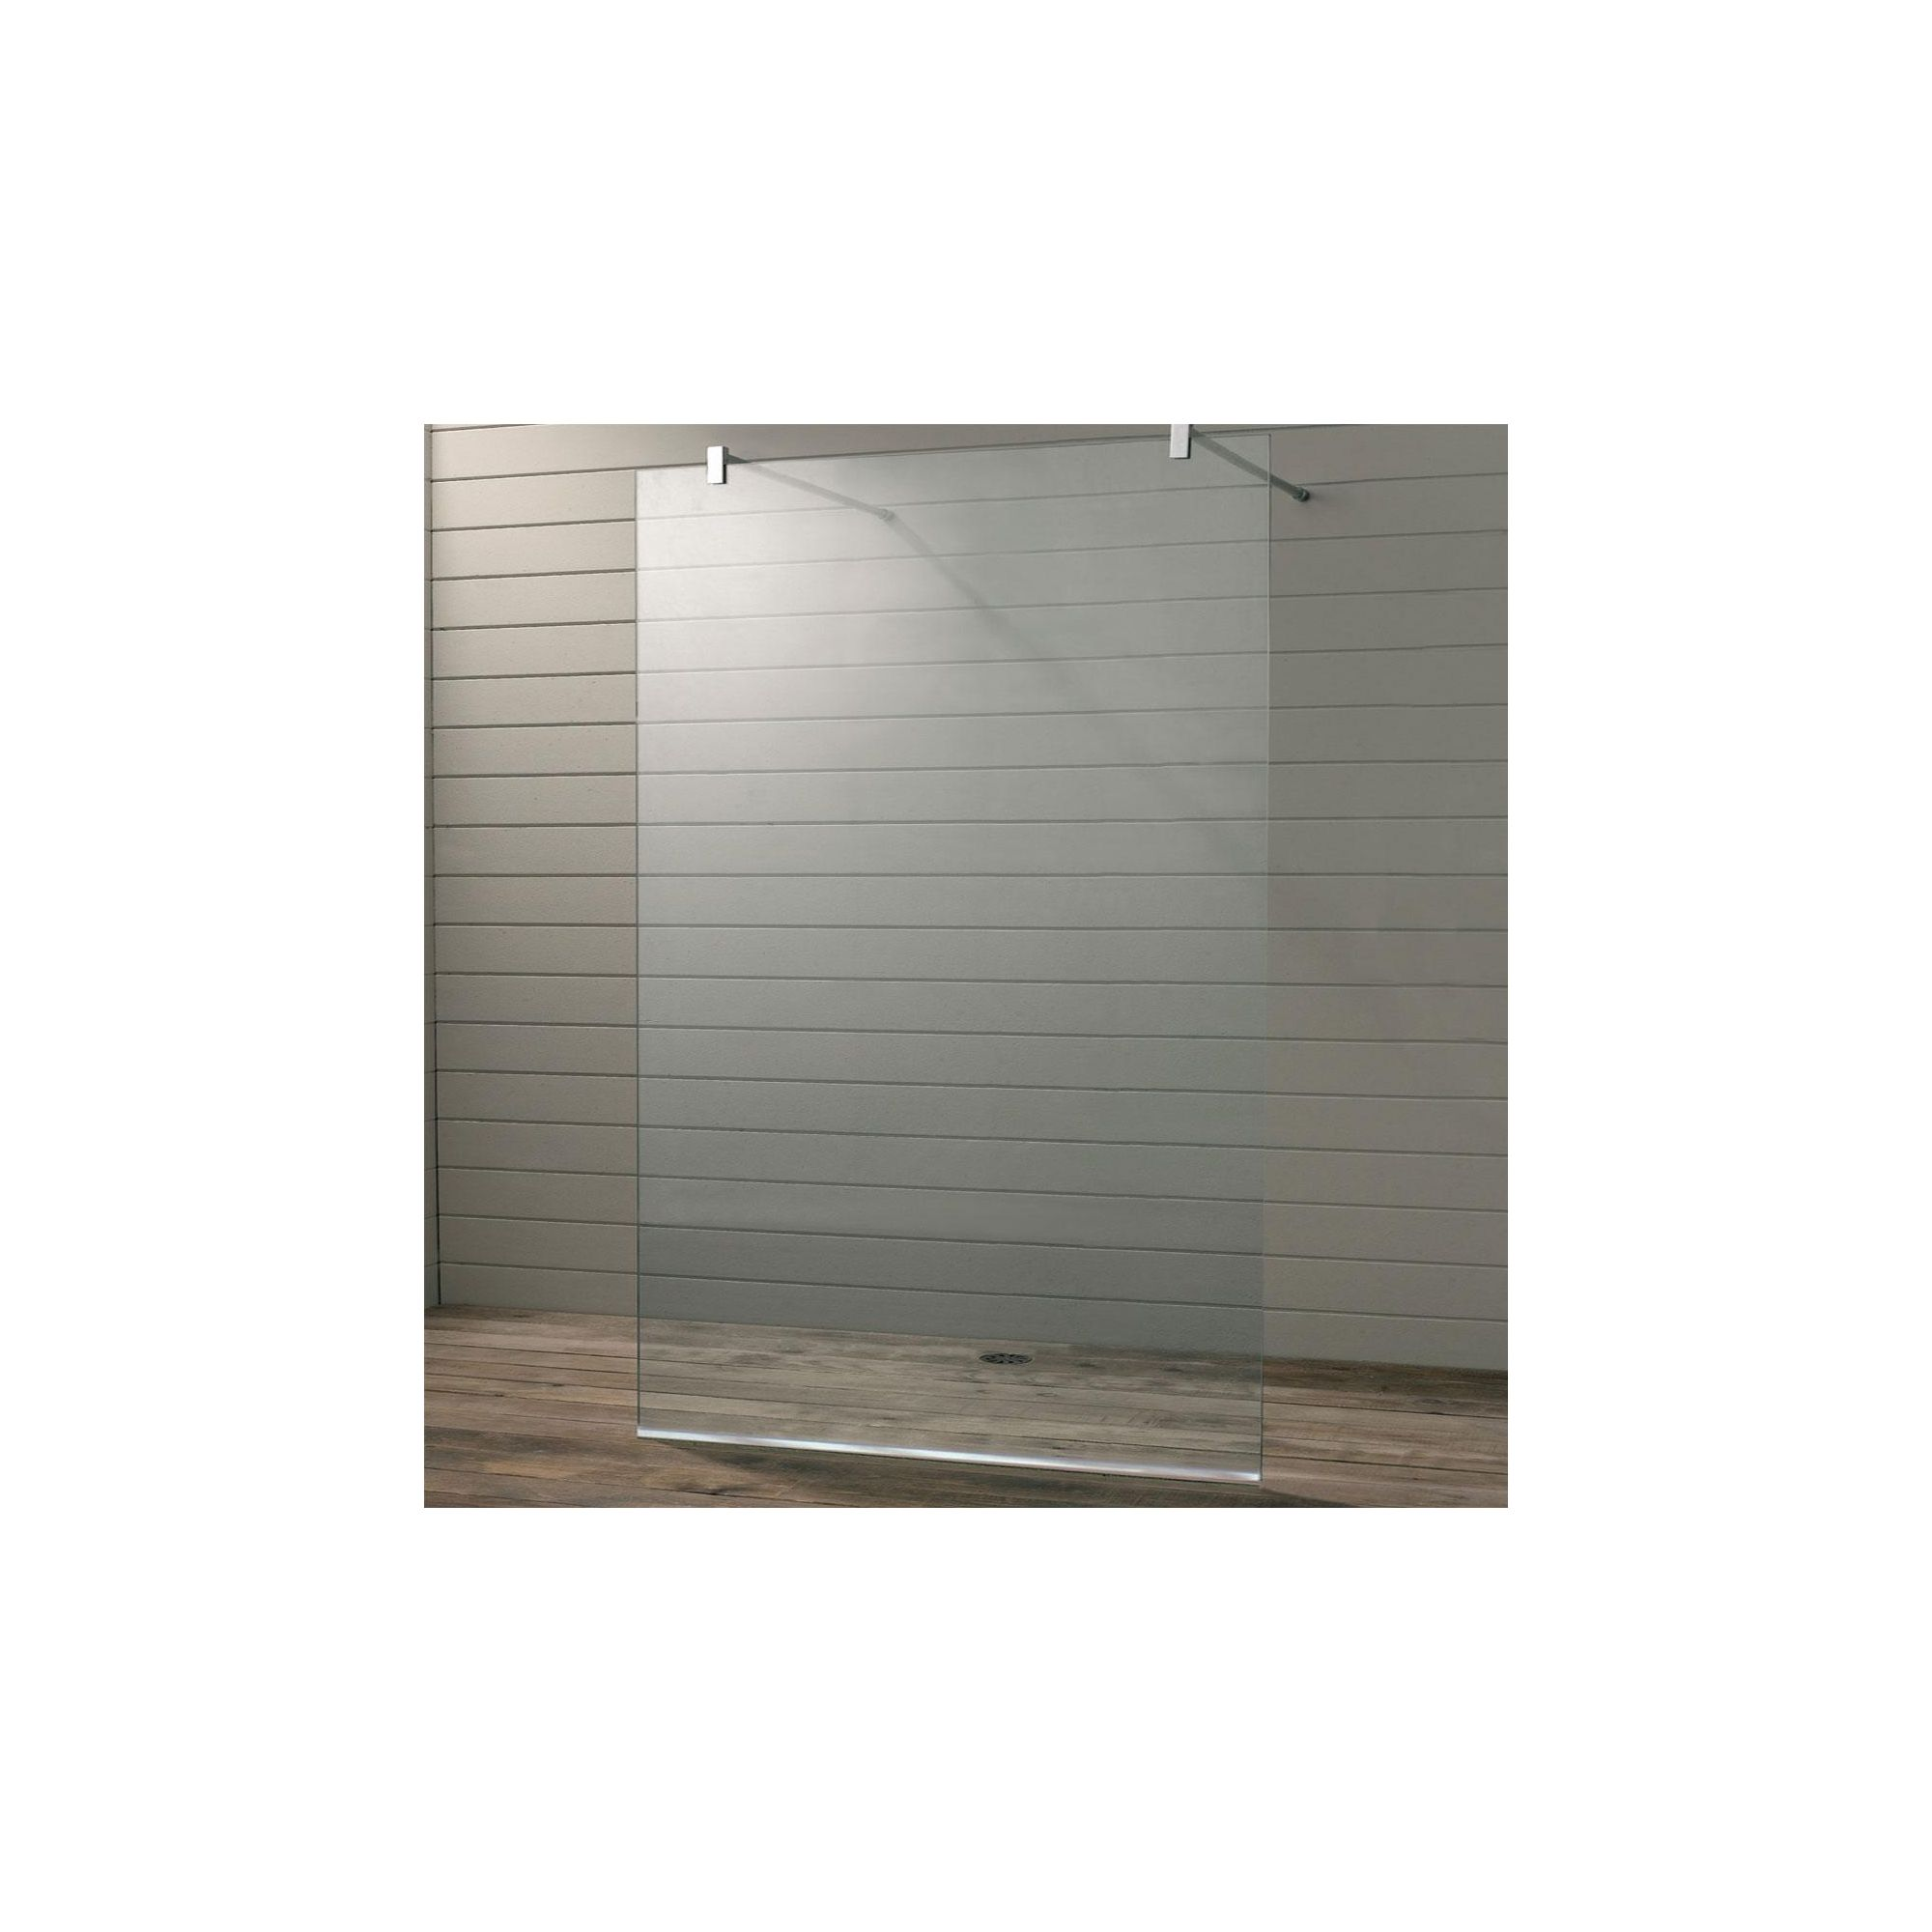 Duchy Premium Wet Room Glass Shower Panel, 1100mm Wide, 10mm Glass at Tesco Direct